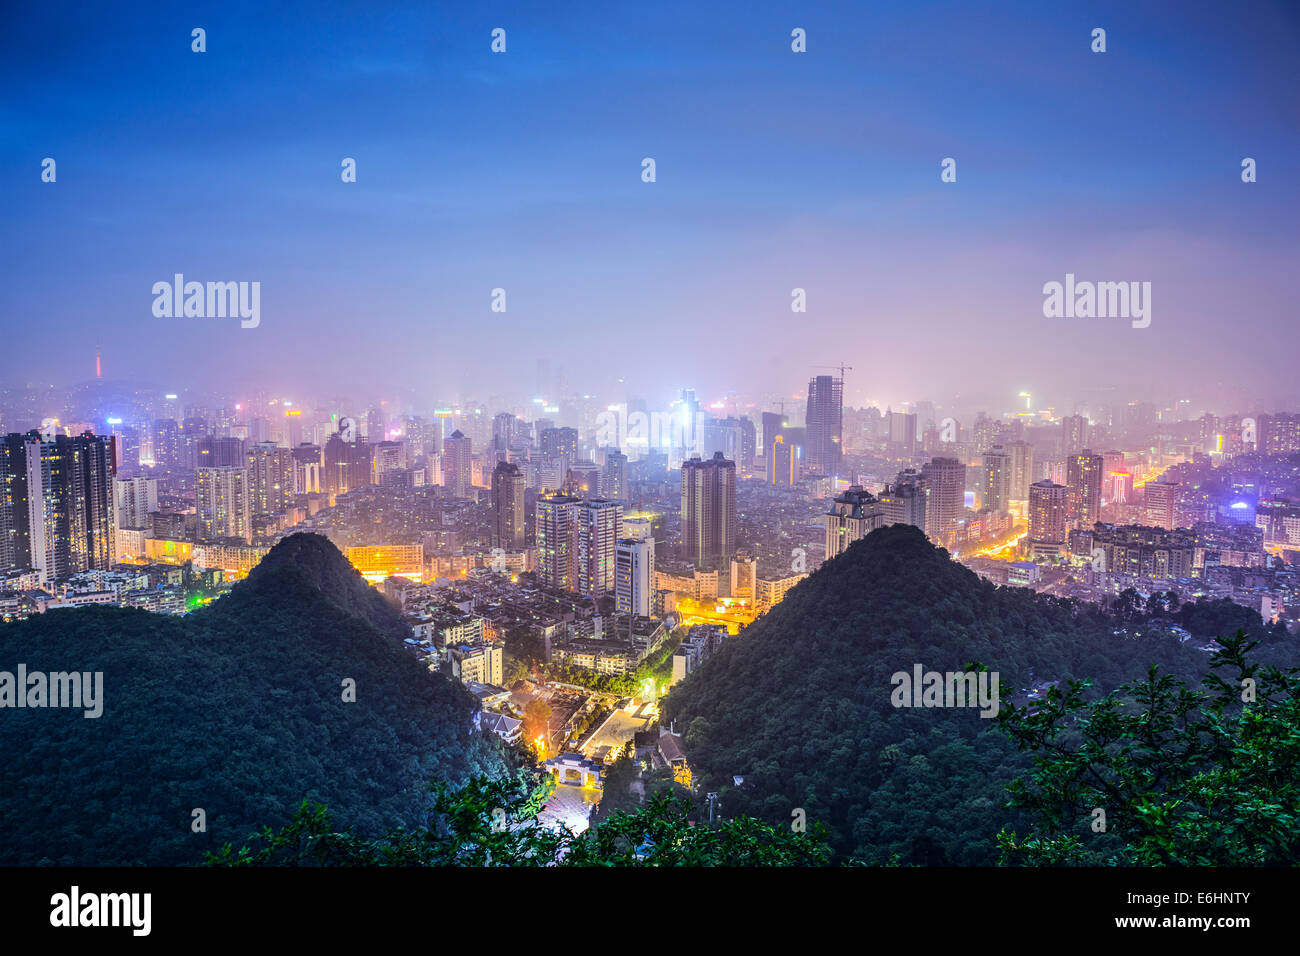 Guiyang, China cityscape at night. - Stock Image